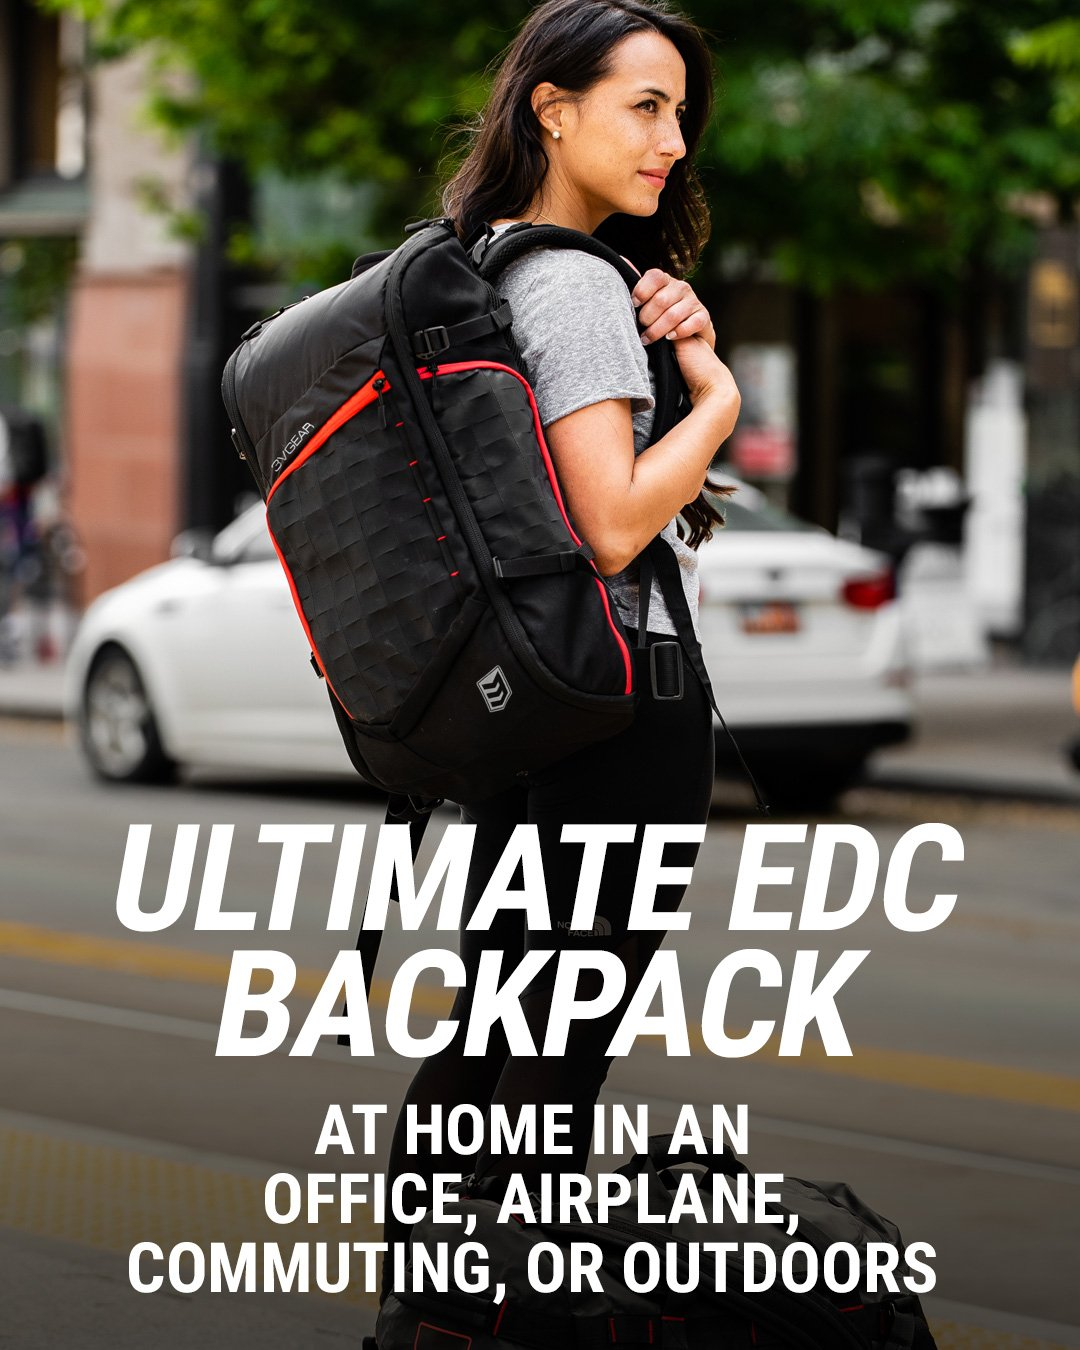 3v gear transit redline edc backpack